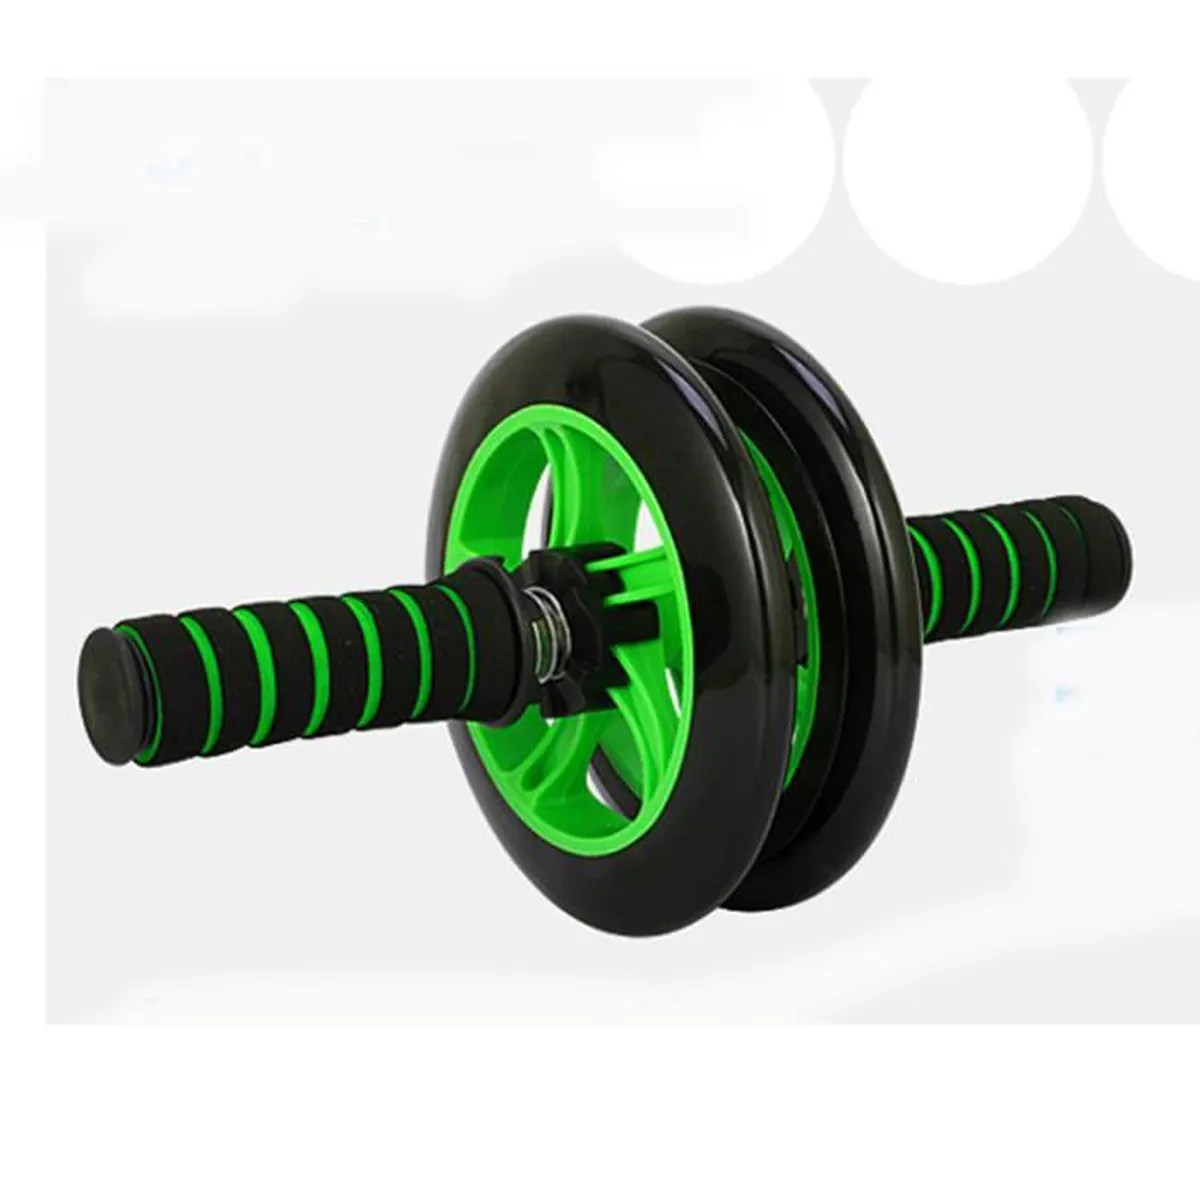 Roue Abdominale AB Wheel Appareil Exercice Musculation